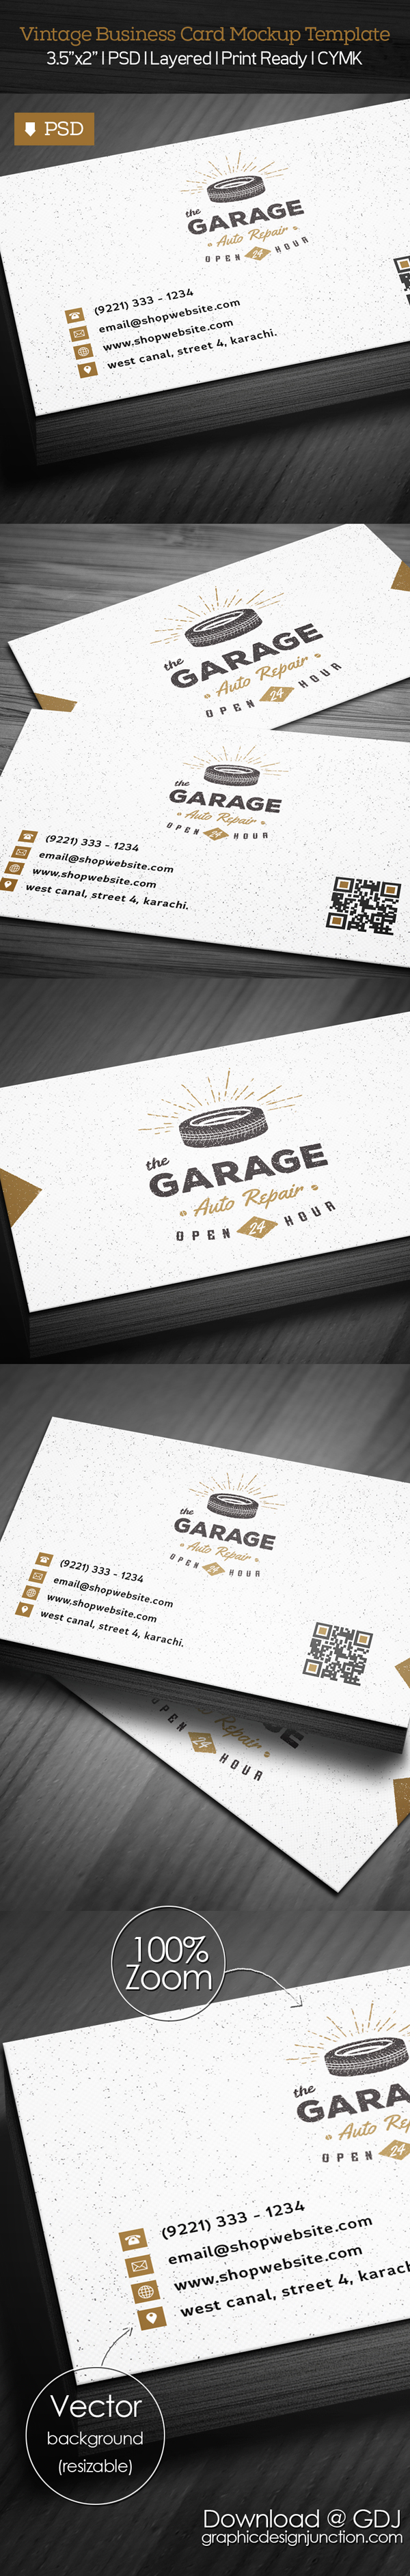 Free Vintage Business Card PSD Template Freebies